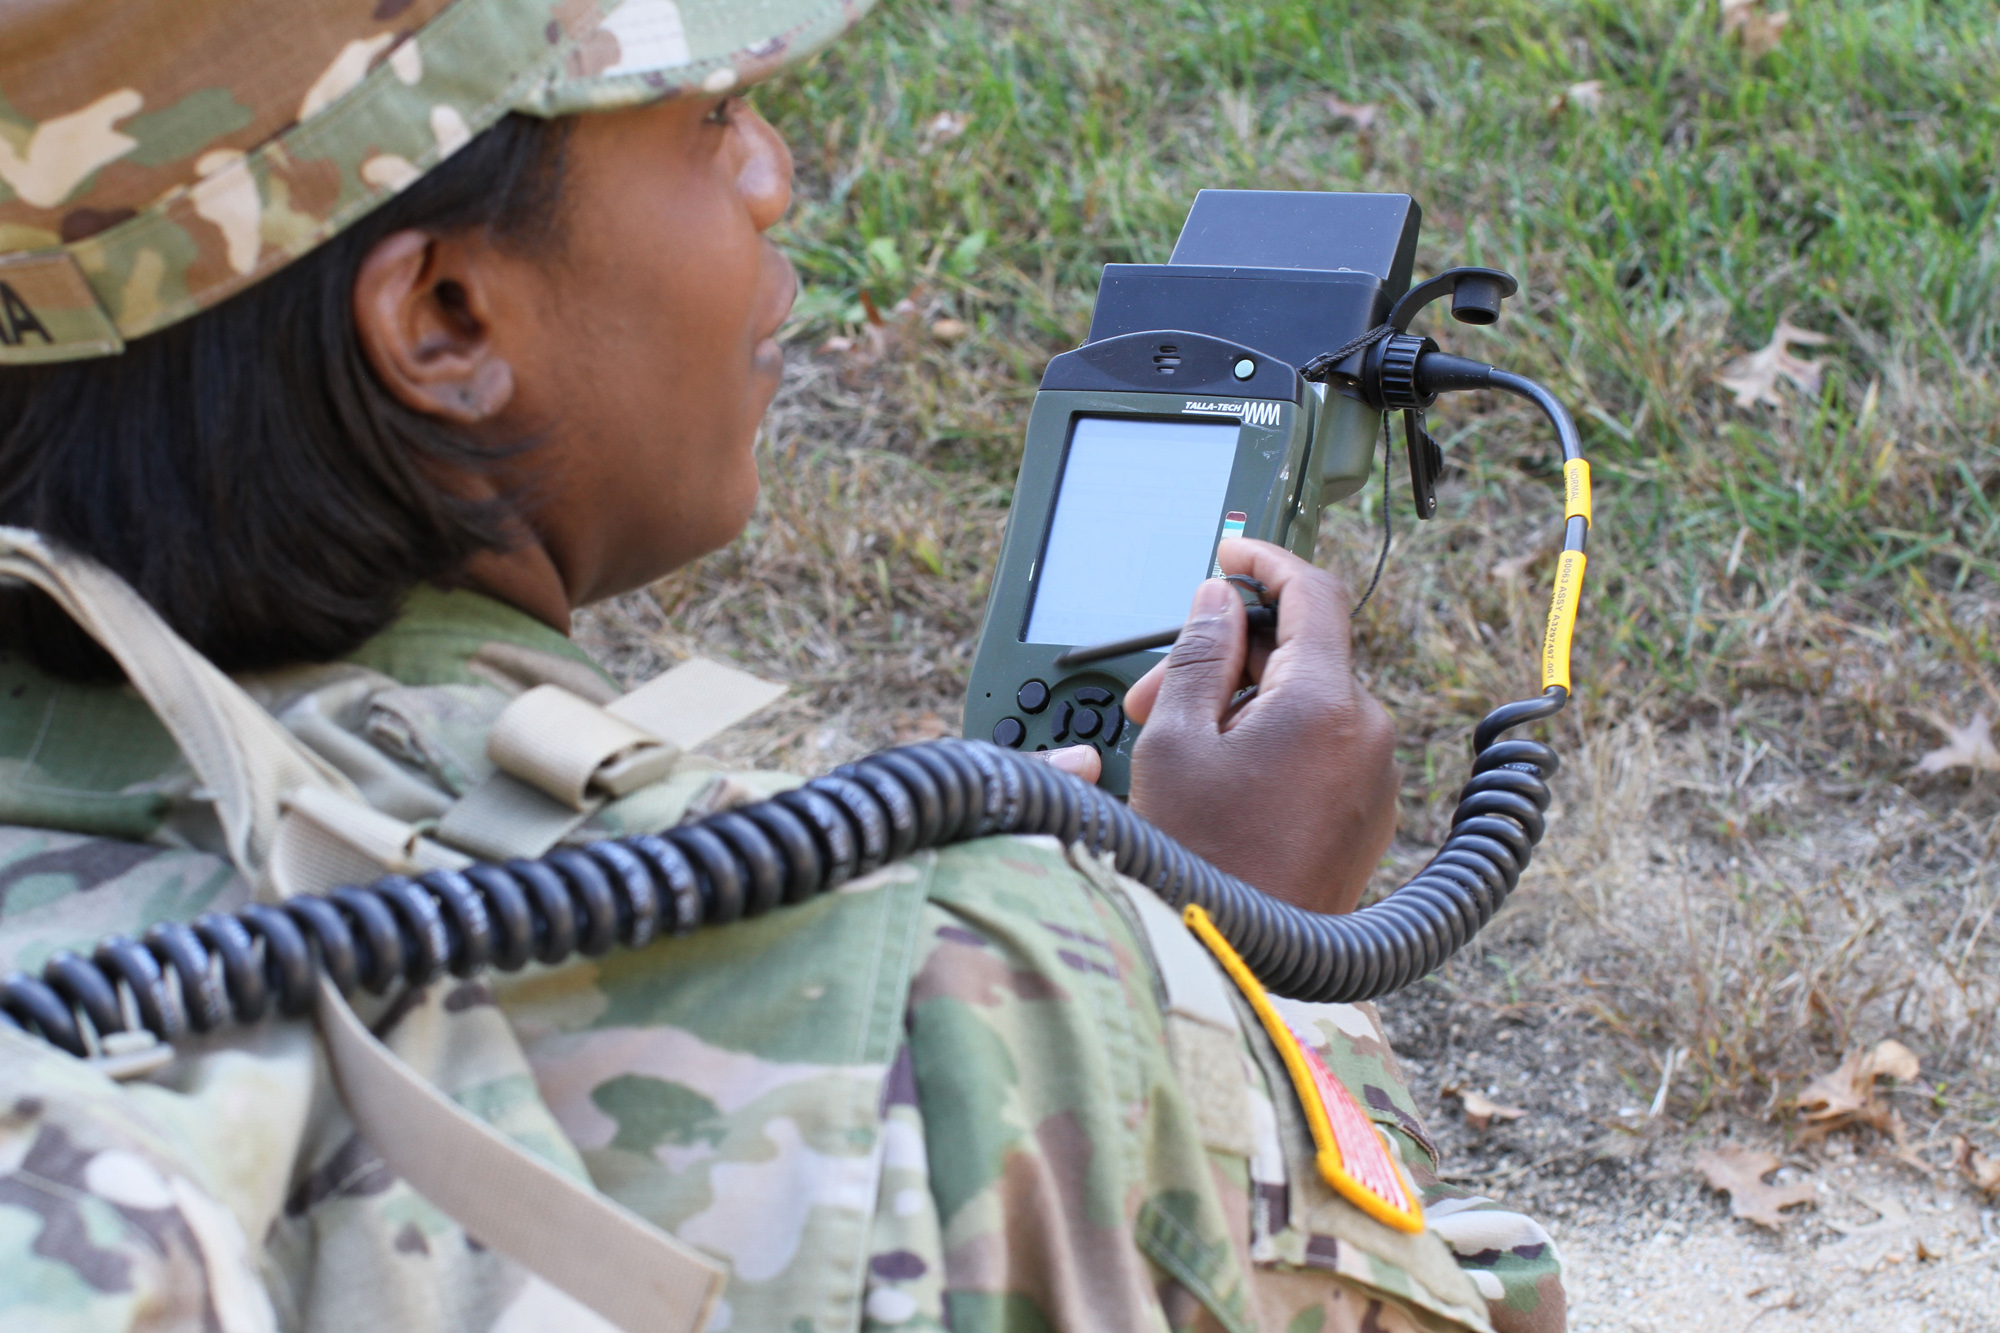 PFEDS, used by forward observers and fire support teams to transmit and receive fires support messages, is one of many mission command systems that could transition into the standard Army supply system.